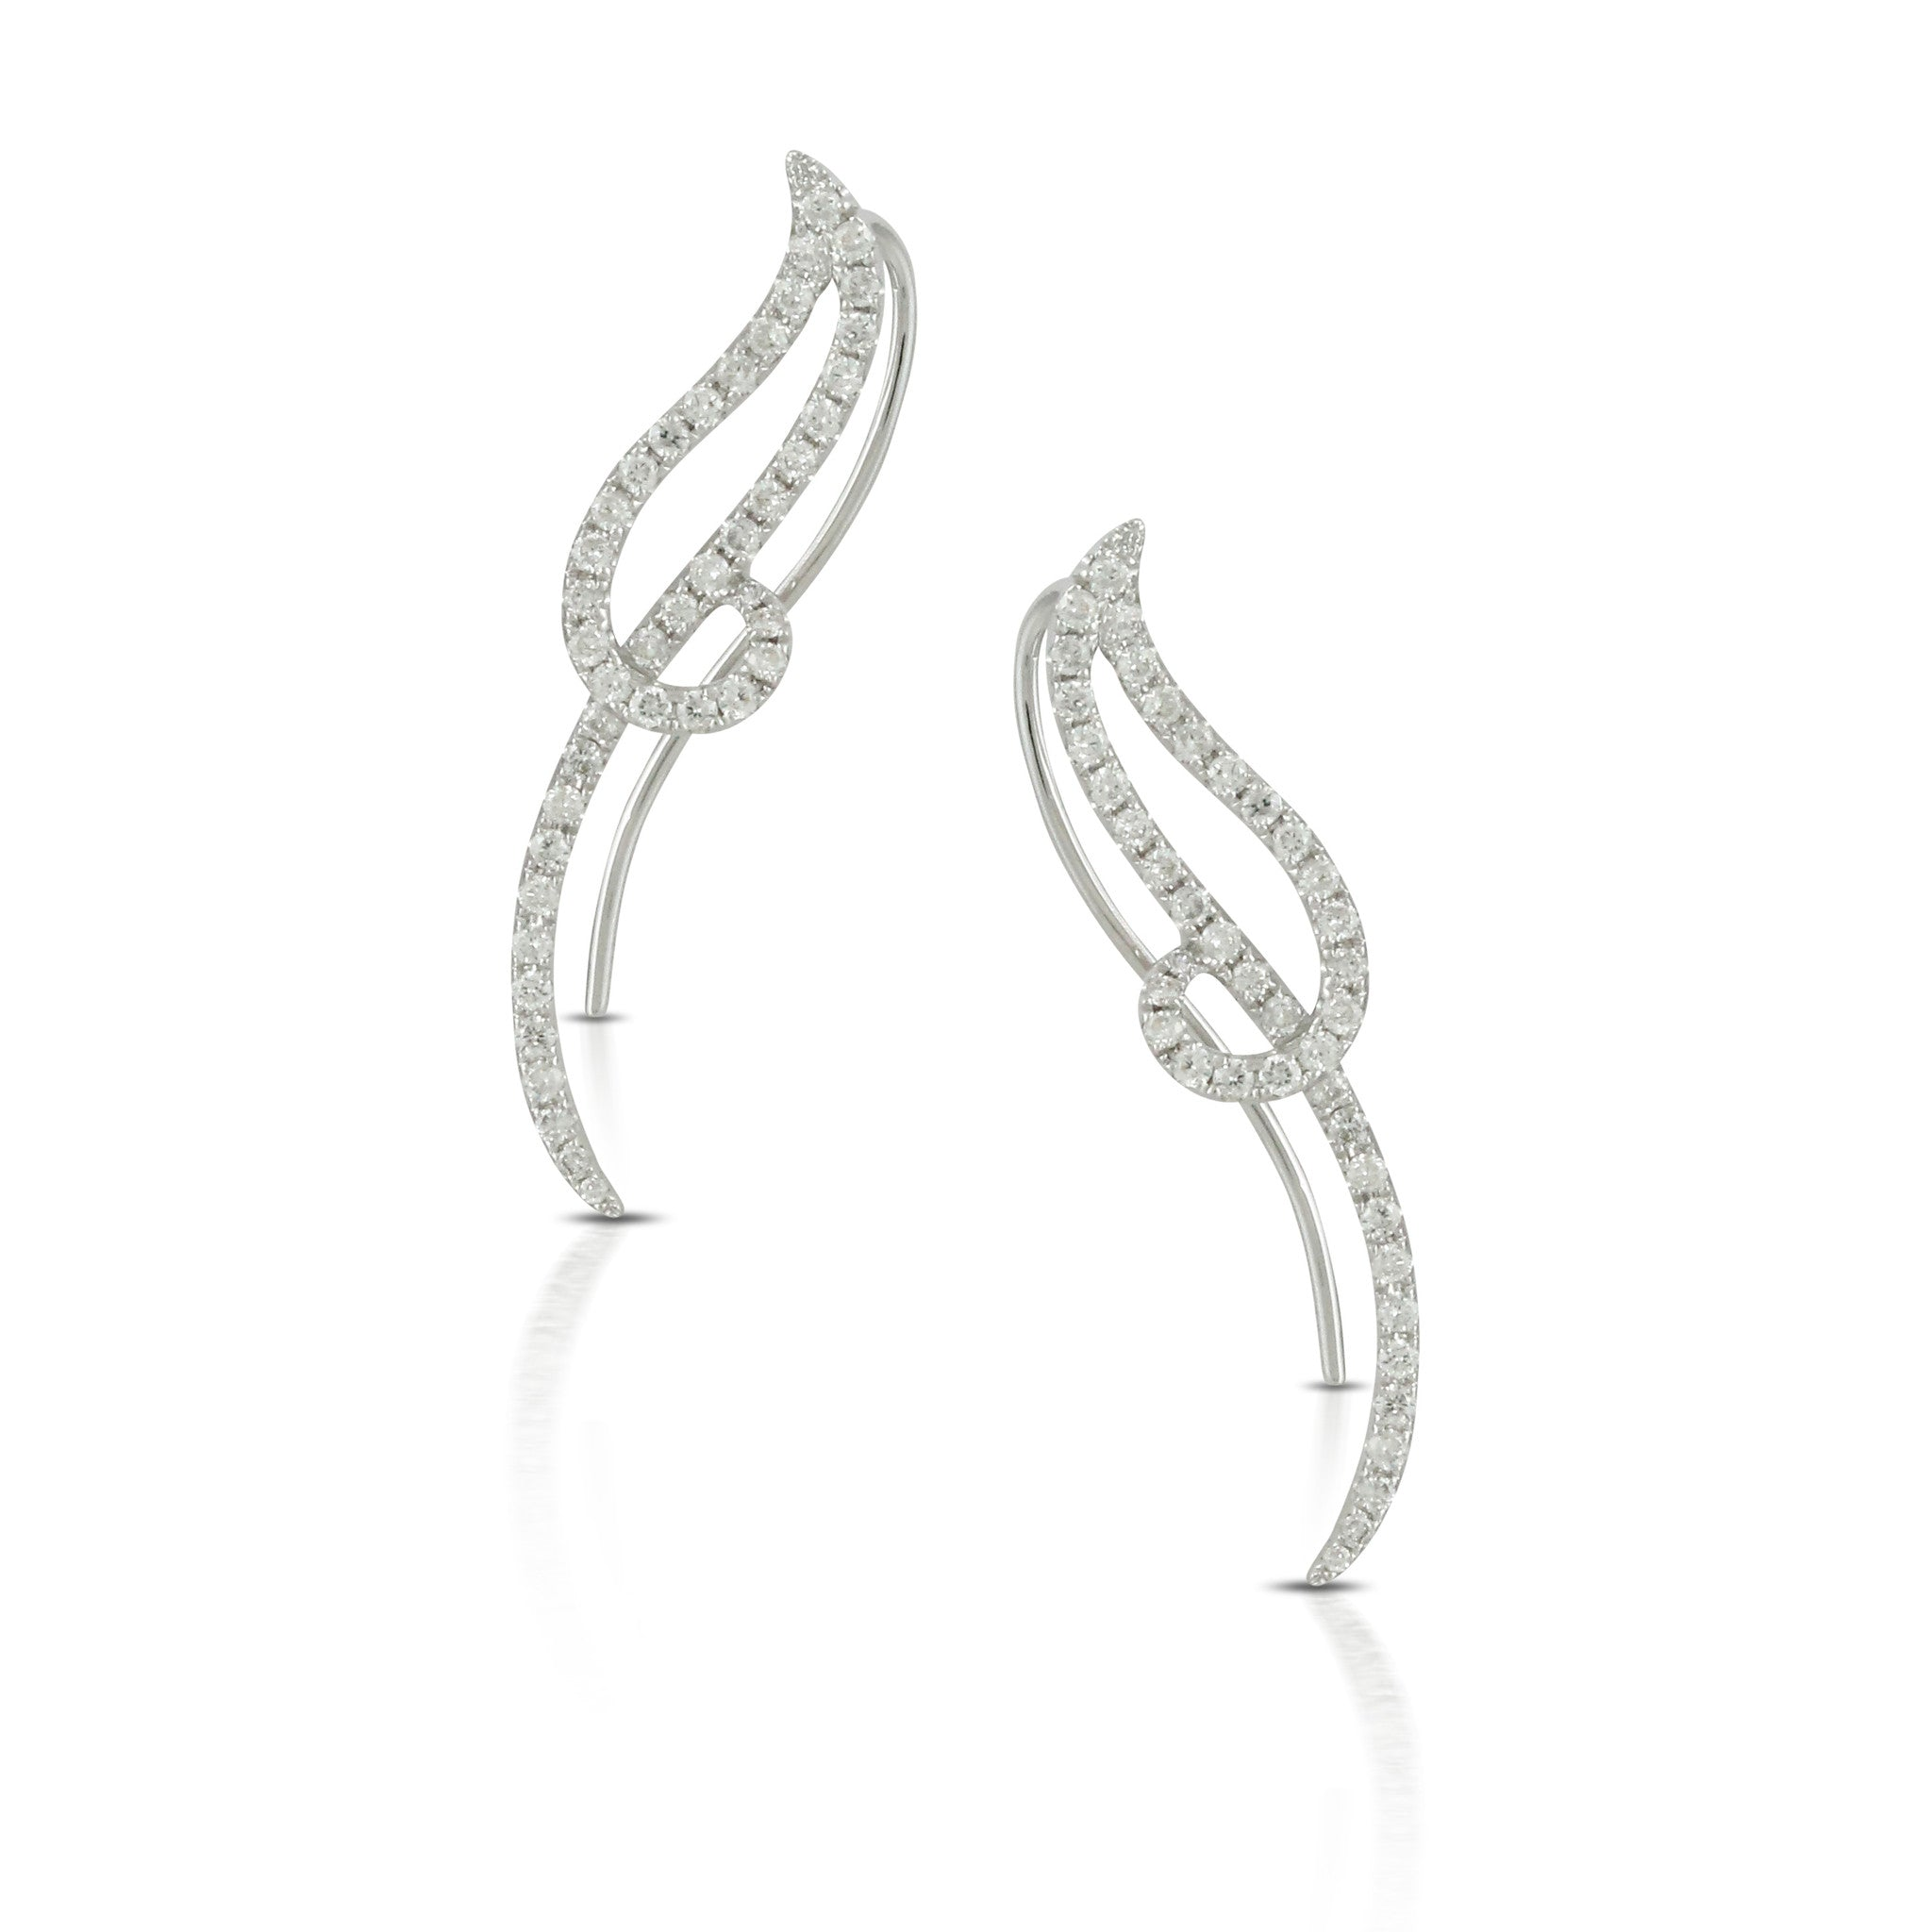 Doves Ladies' 18k White Gold Diamond Climber Earrings by Jewelry Designer Doron Paloma